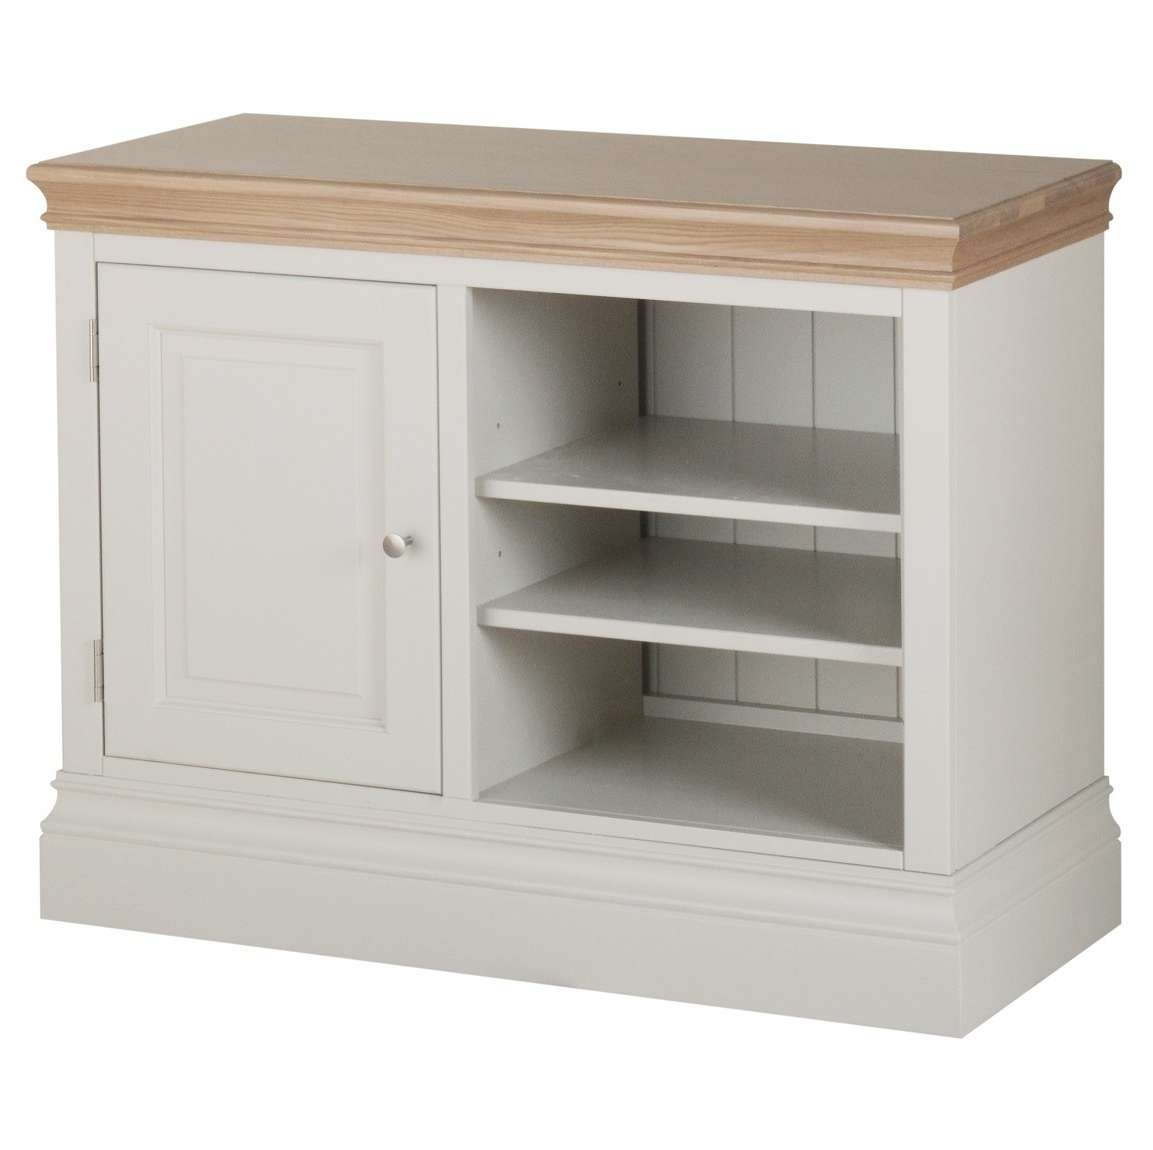 Country Oak And Painted Small Tv Cabinet | Oak Furniture Uk Throughout Country Tv Stands (View 13 of 15)